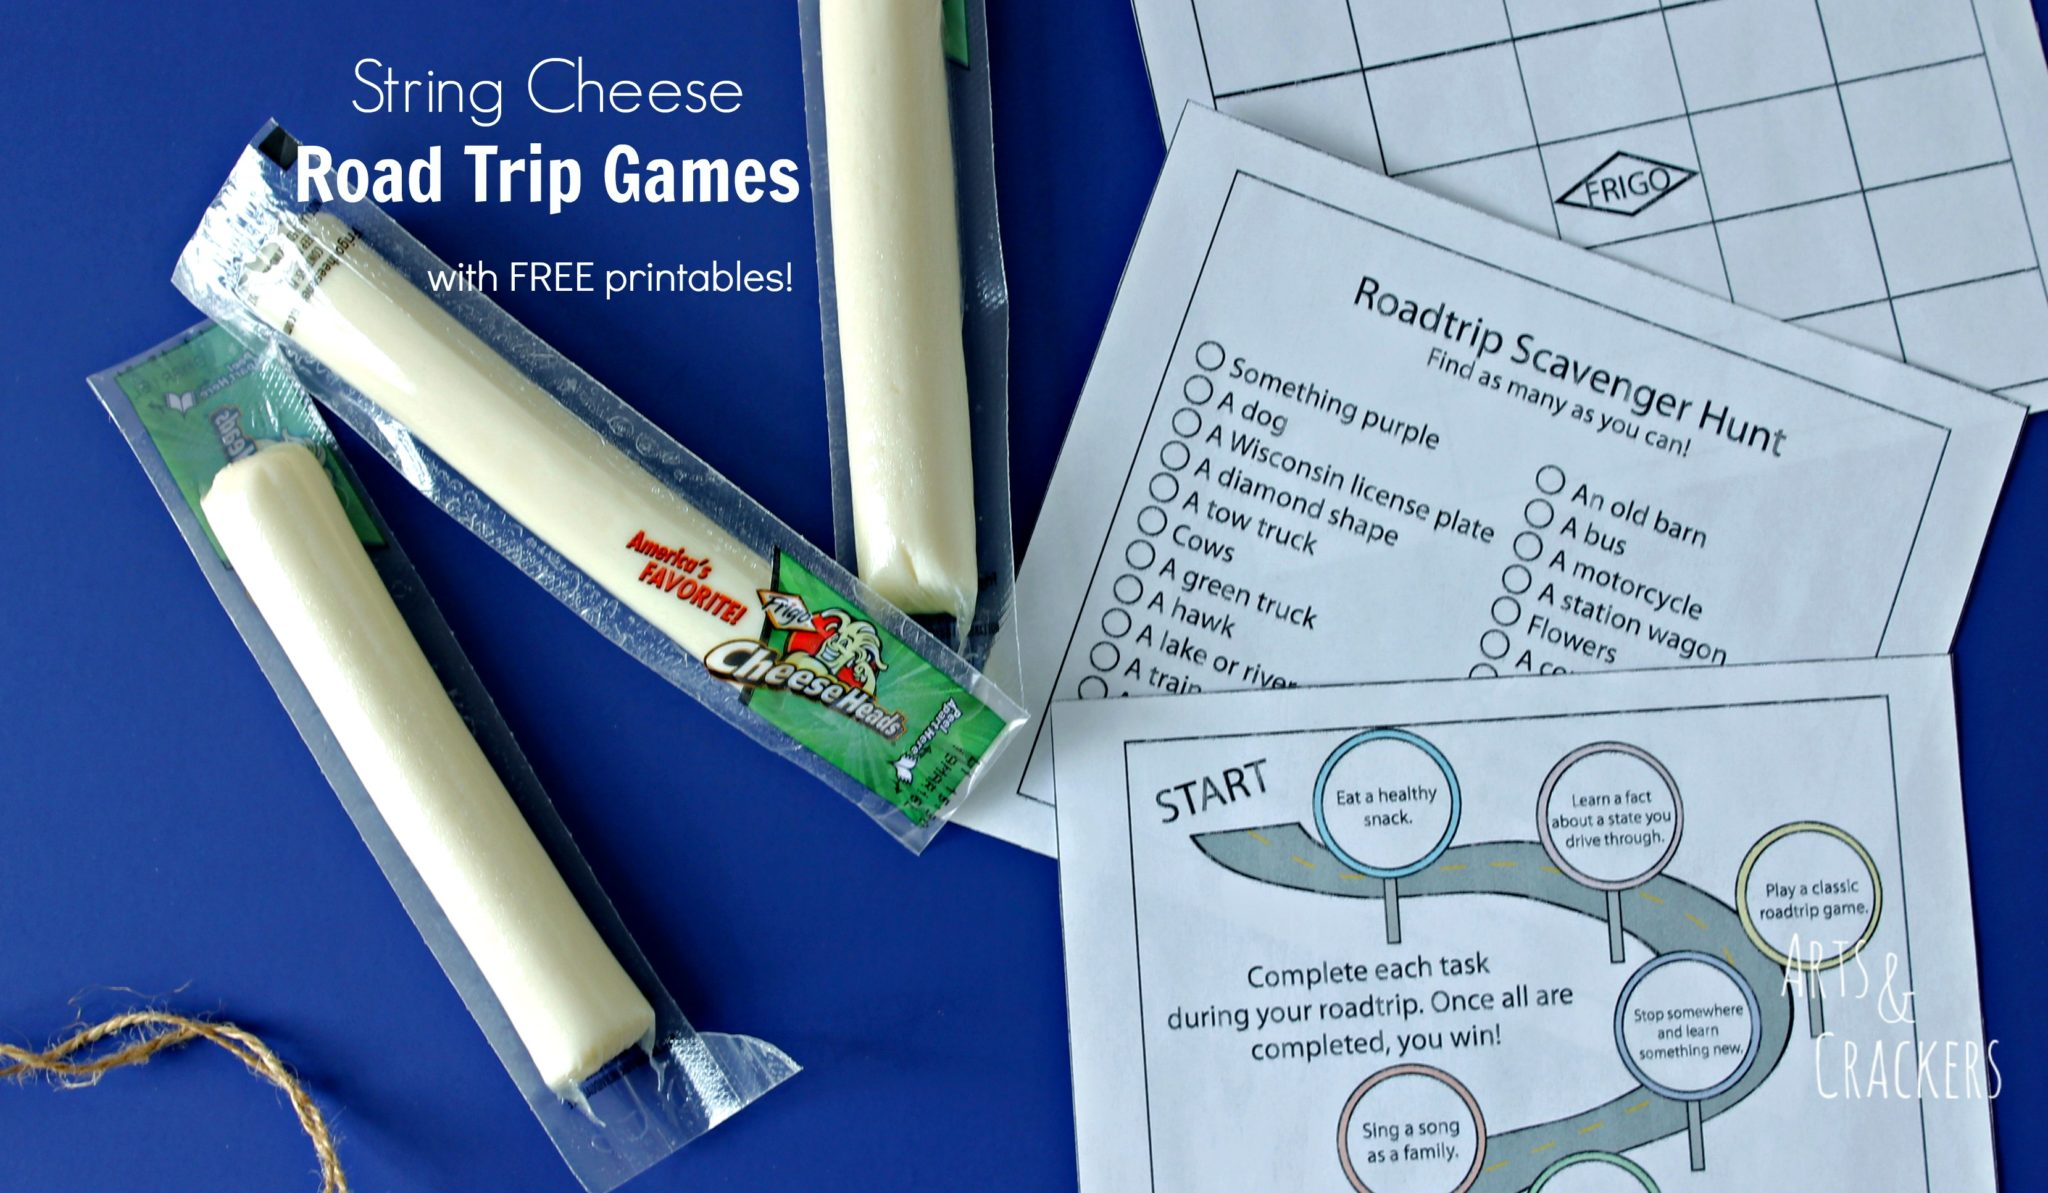 String Cheese Road Trip Games